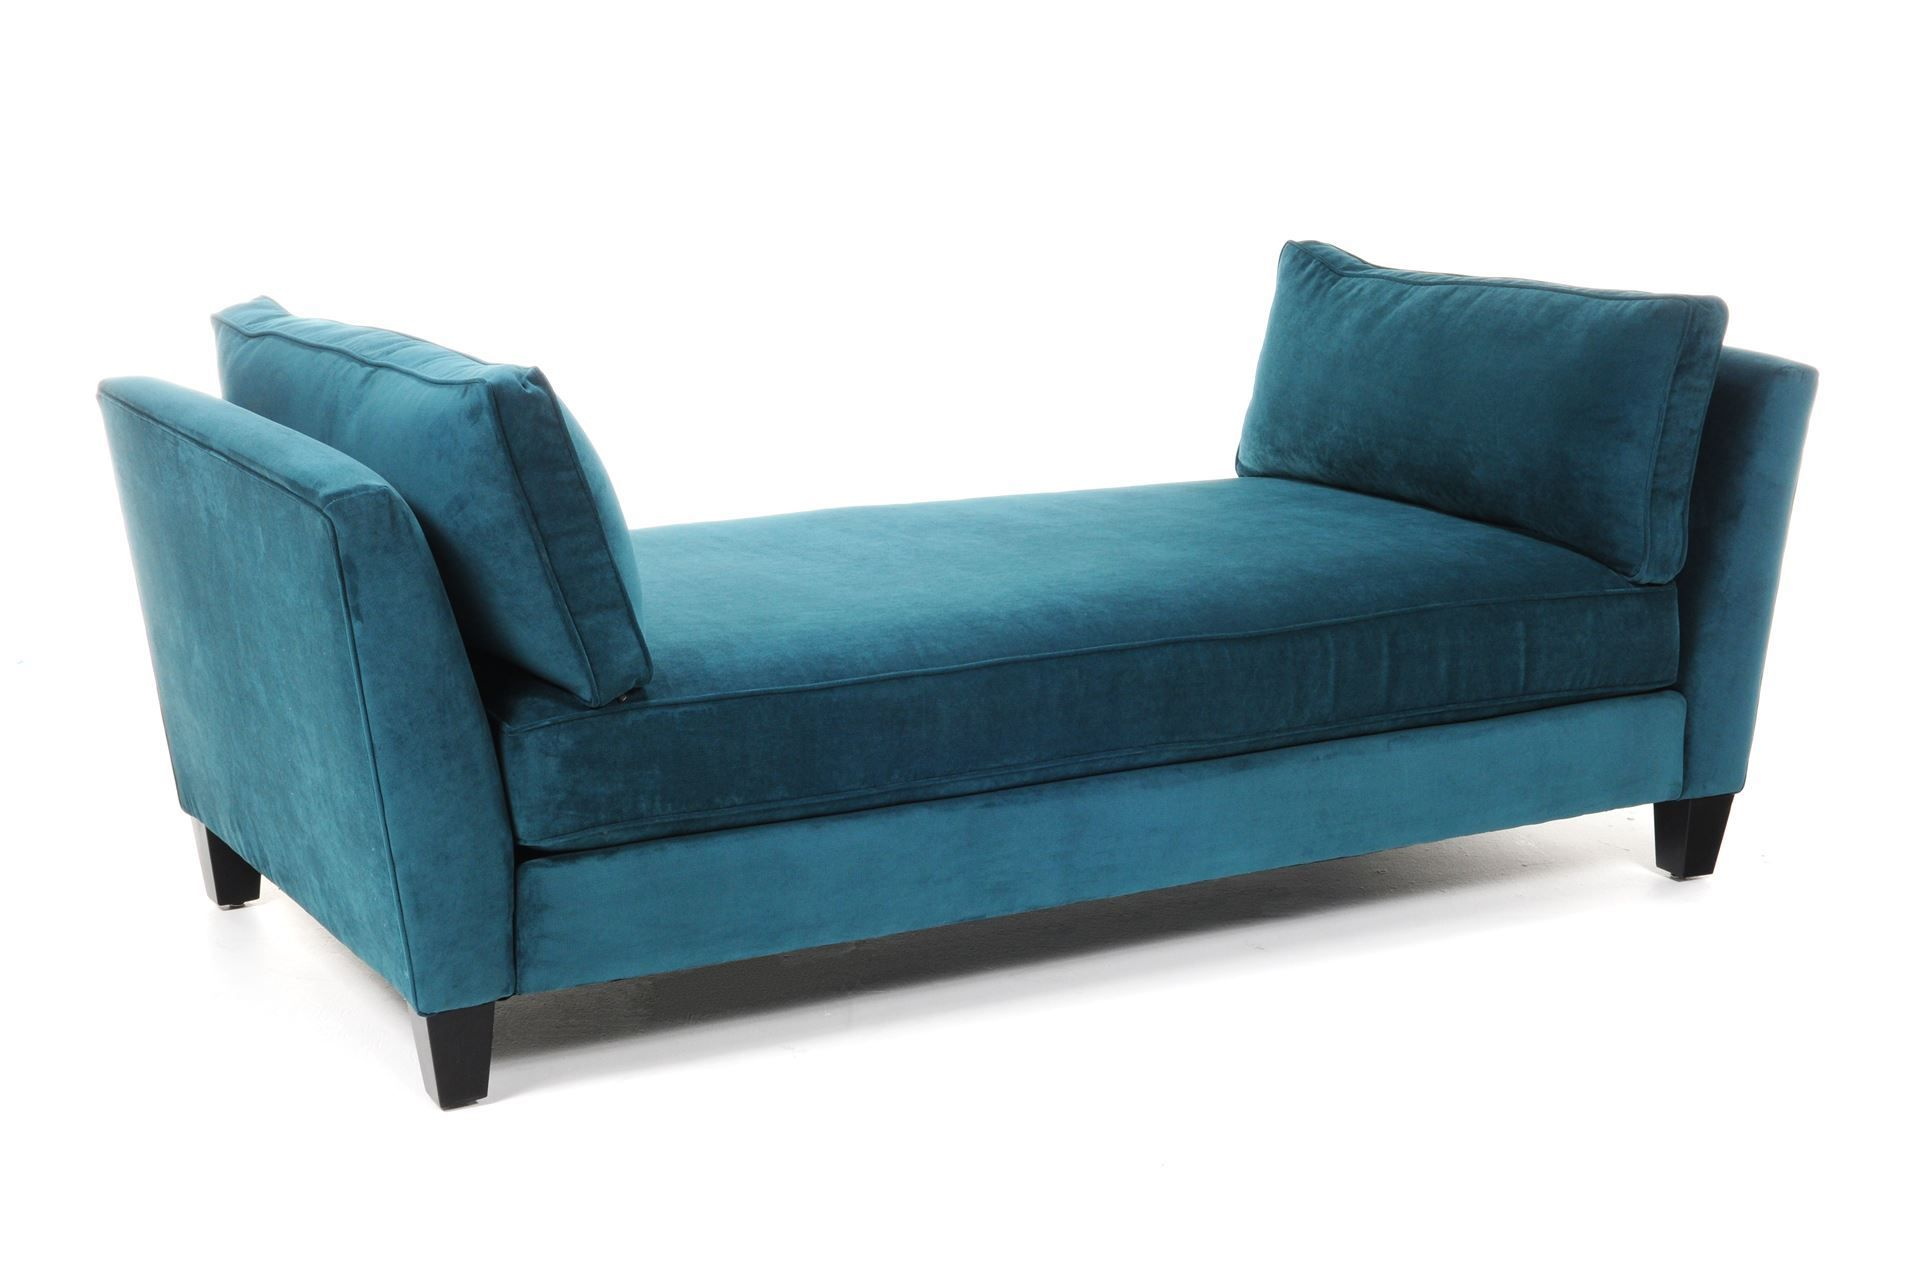 beautiful chaise lounge living room. Fainting  falling our lounging this beautiful chaise lounge will catch you every time